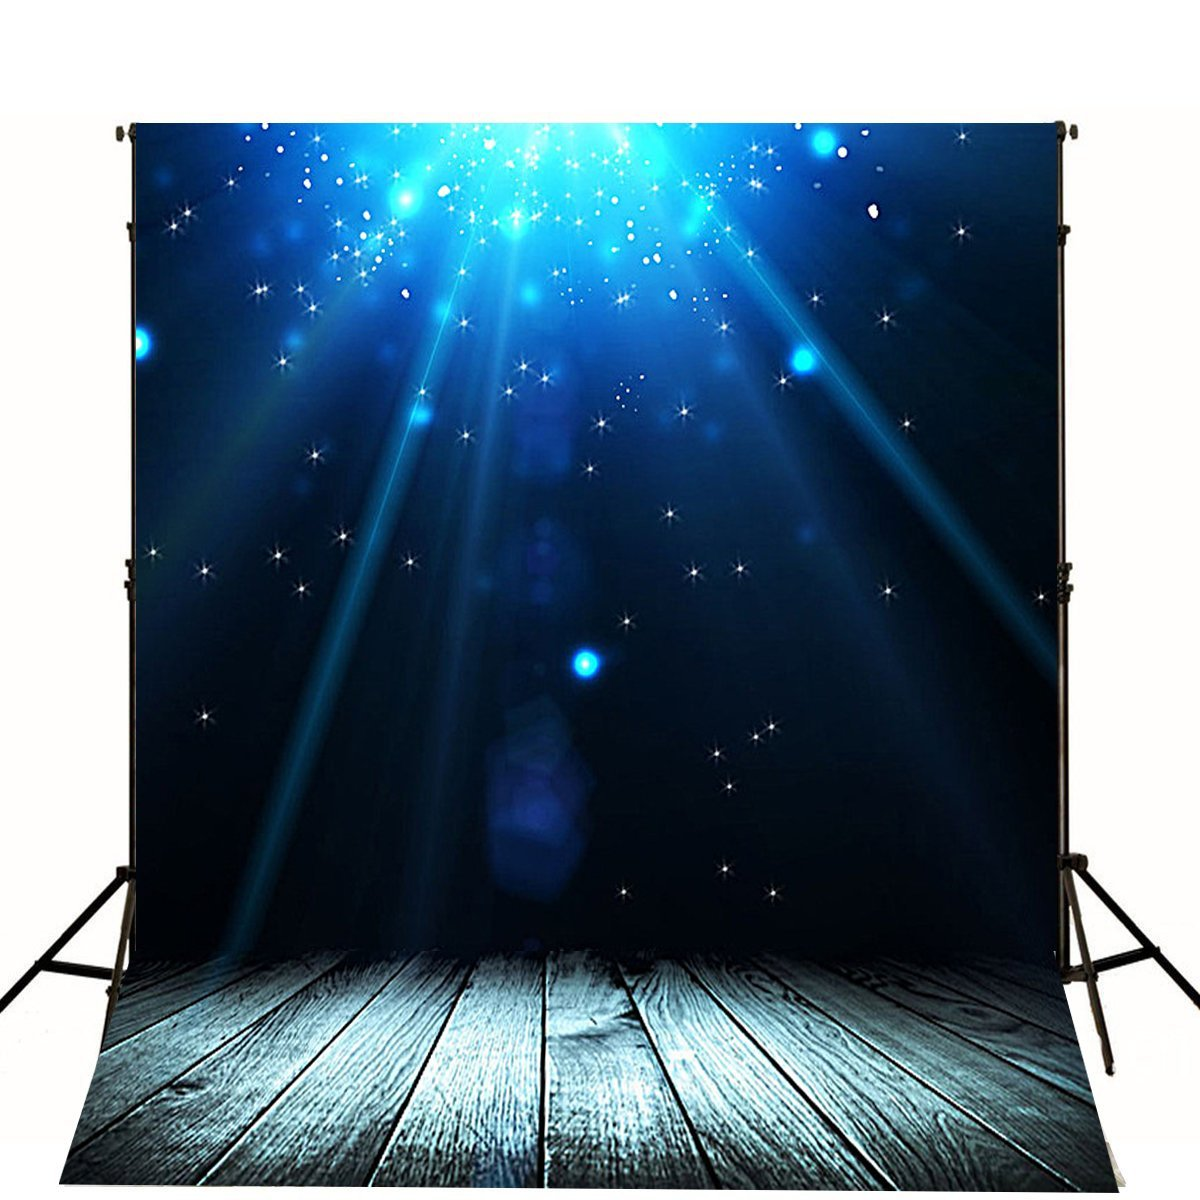 CdHBH 5X7ft Polyester Simple Painting Photography Backdrop Snow in The Night Photo Props Studio Background LYLX125